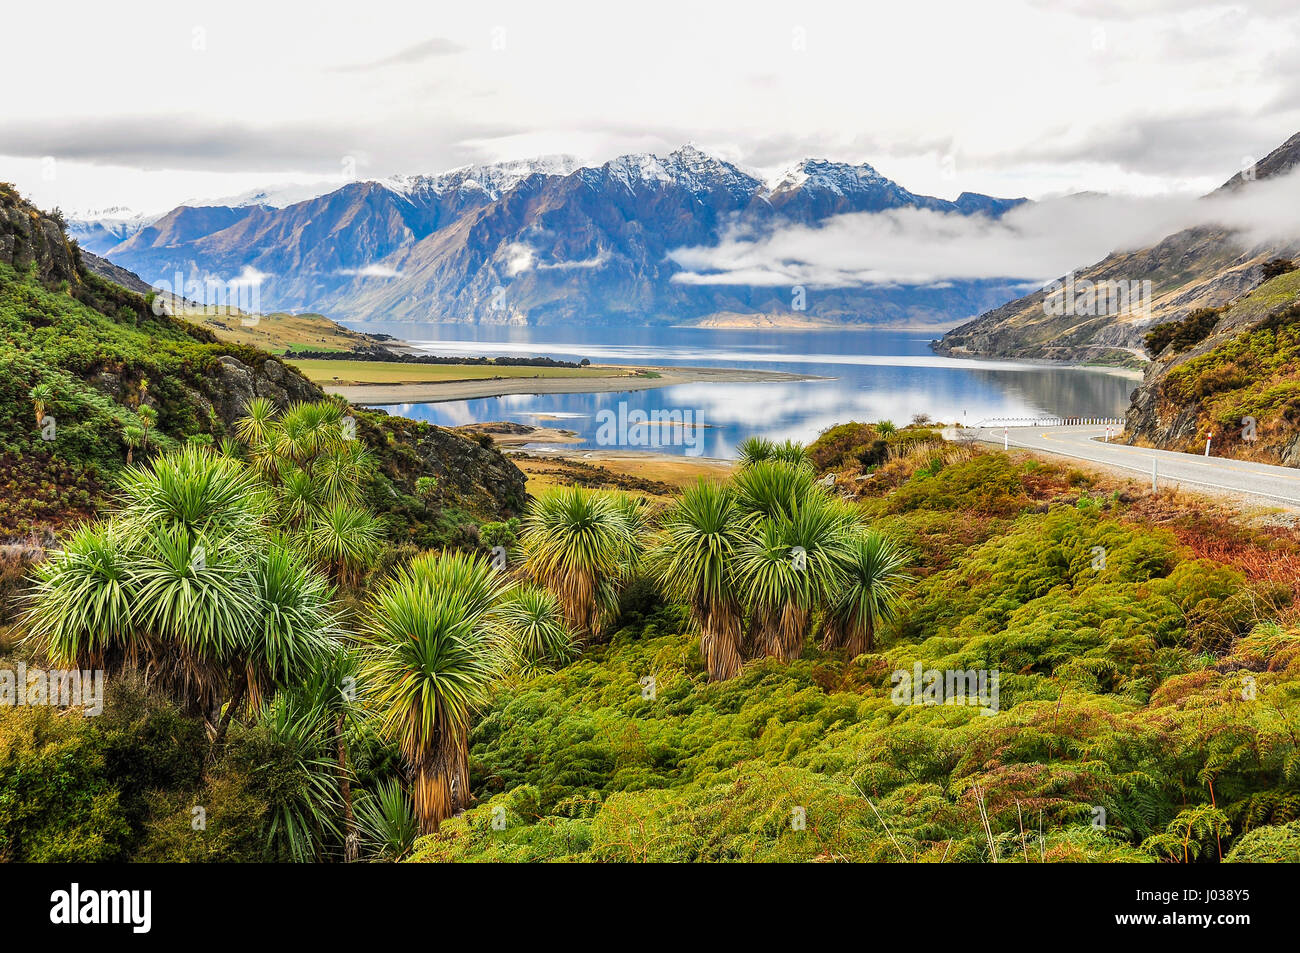 Clouds lying low over a lake near Wanaka in the Southern Lakes Region of New Zealand Stock Photo